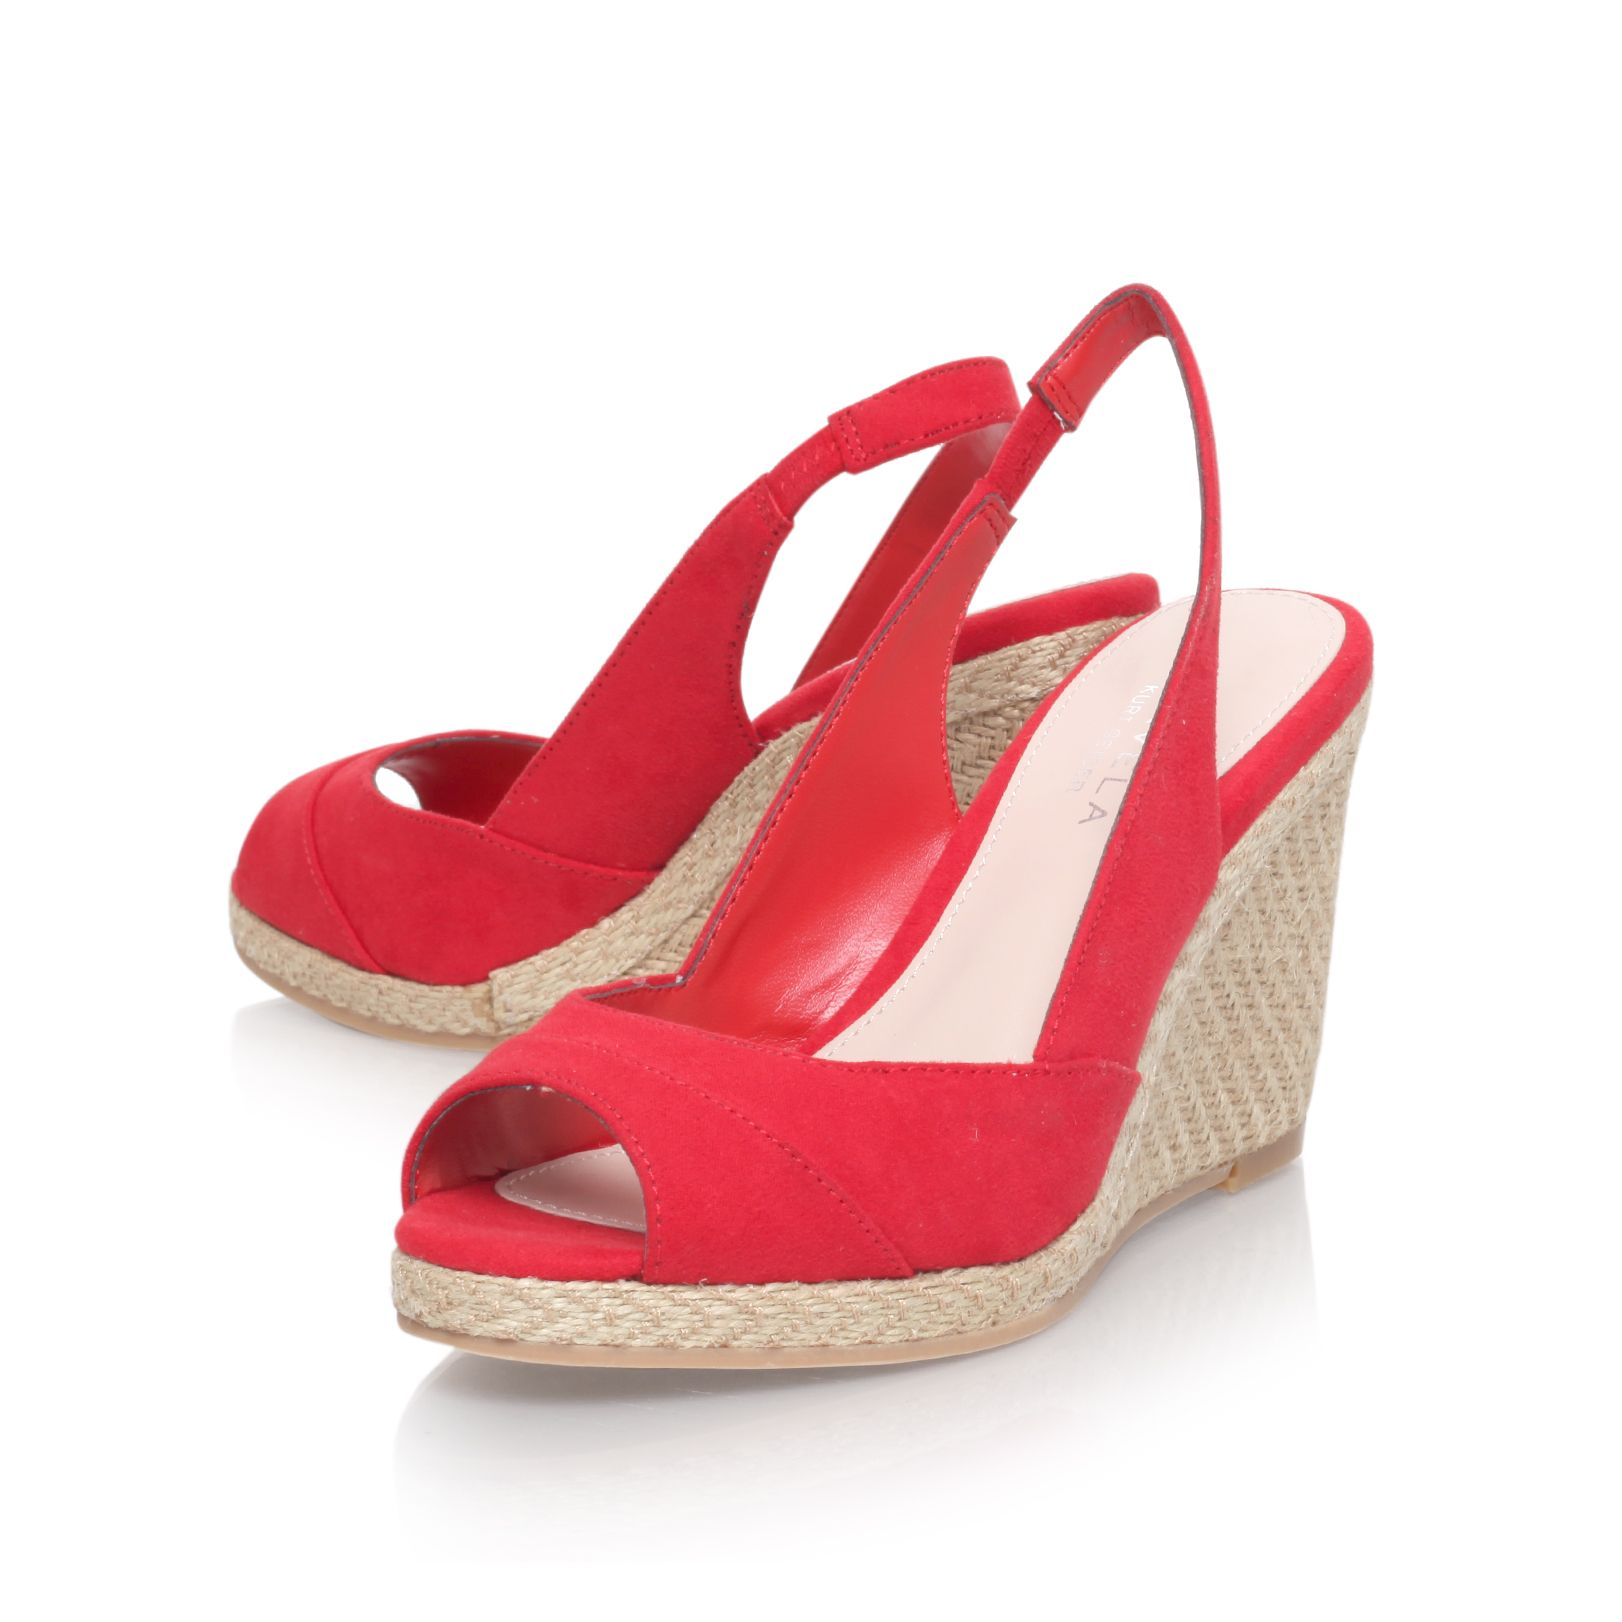 Shop the collection of Women's Sandals by Aerosoles. Find women's high quality, comfortable, on-trend shoes at affordable prices.